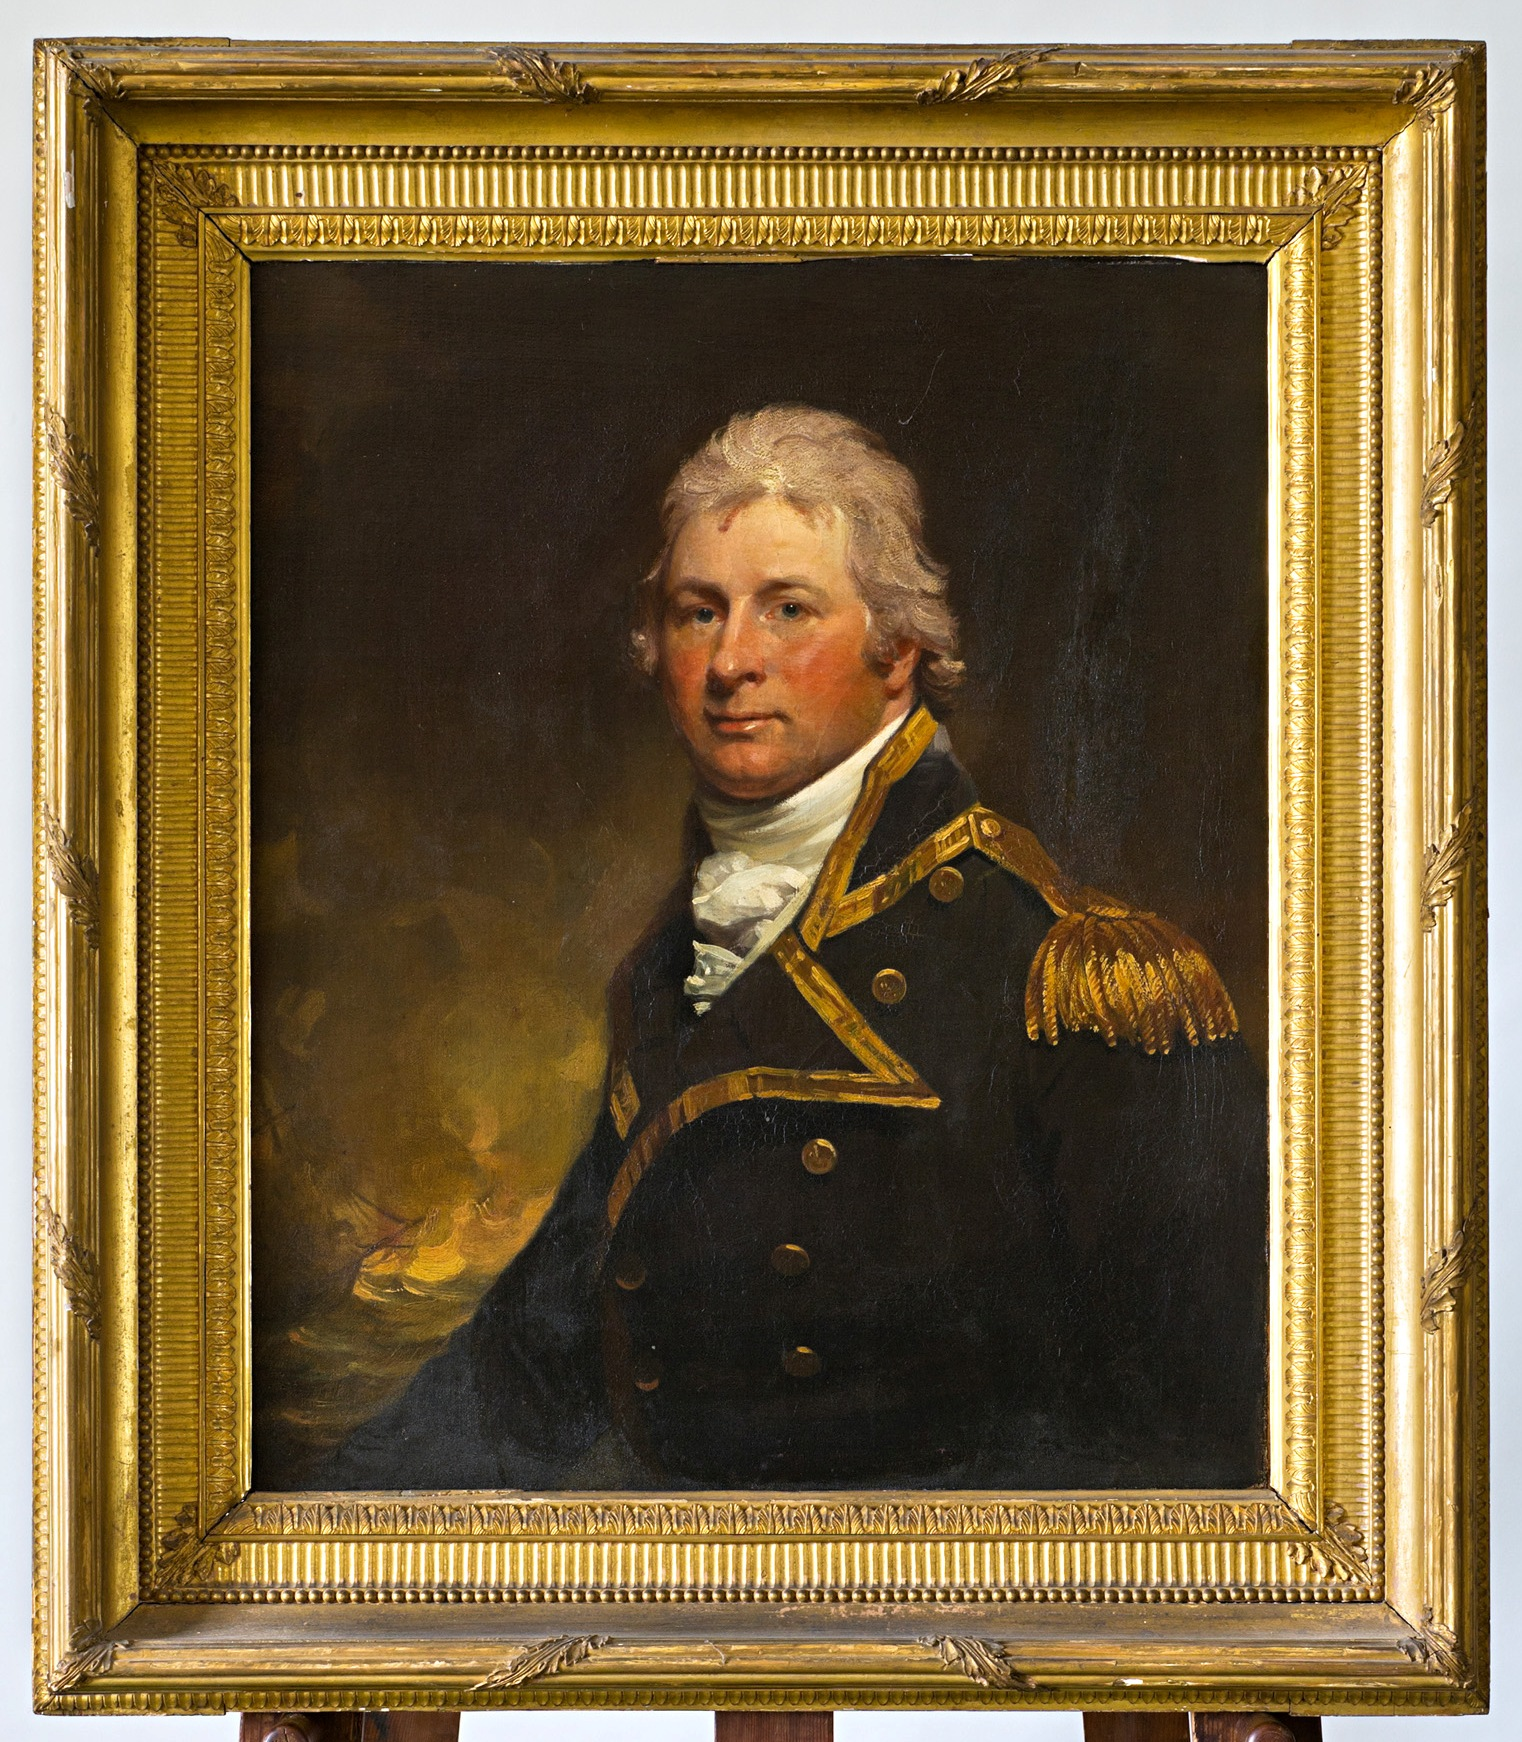 Portrait of Captain William Pierrepont, by Sir Martin Archer Shee, P.R.A. (1769-1850).